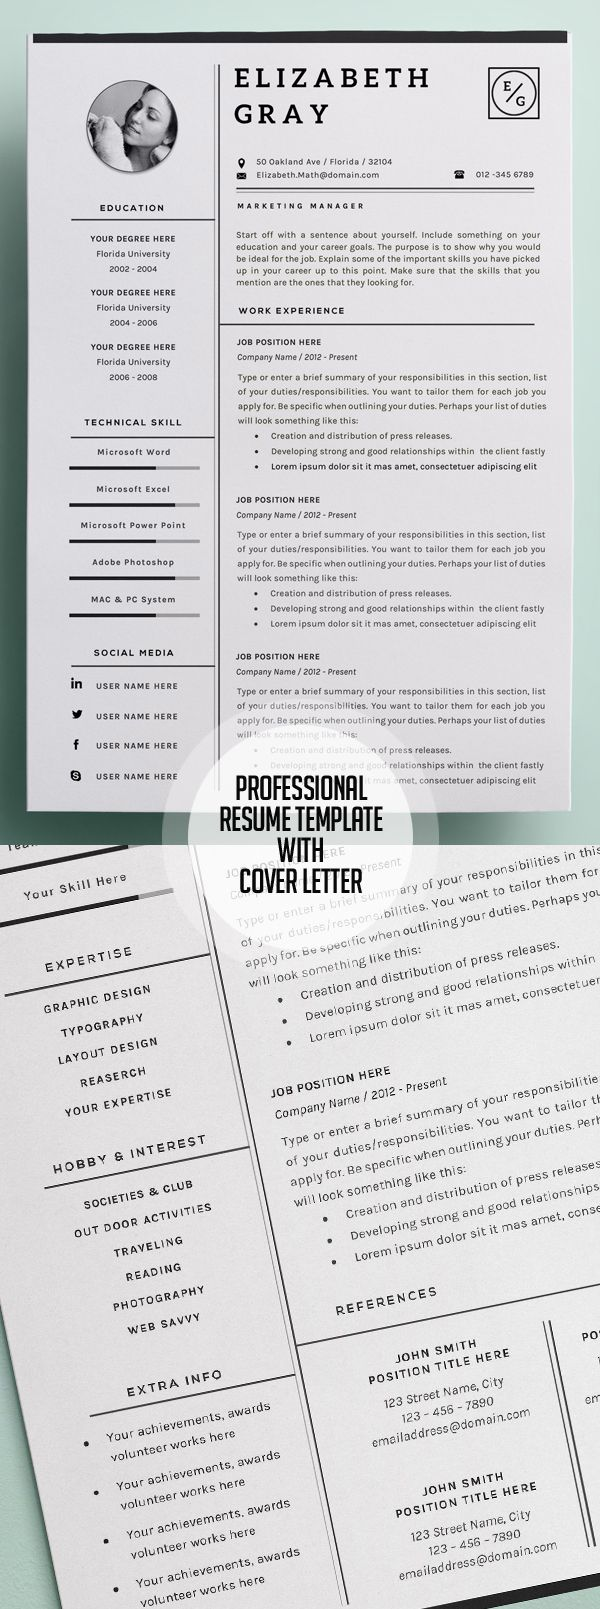 Opposenewapstandardsus  Sweet  Resume Ideas On Pinterest  Resume Resume Templates And  With Licious Professional And Modern Resume Template With Page Cover Cvtemplate With Astounding Procurement Manager Resume Also Senior Auditor Resume In Addition Good Fonts For Resume And Skills To Use On A Resume As Well As Soft Copy Of Resume Additionally Skills Section Of Resume Example From Pinterestcom With Opposenewapstandardsus  Licious  Resume Ideas On Pinterest  Resume Resume Templates And  With Astounding Professional And Modern Resume Template With Page Cover Cvtemplate And Sweet Procurement Manager Resume Also Senior Auditor Resume In Addition Good Fonts For Resume From Pinterestcom